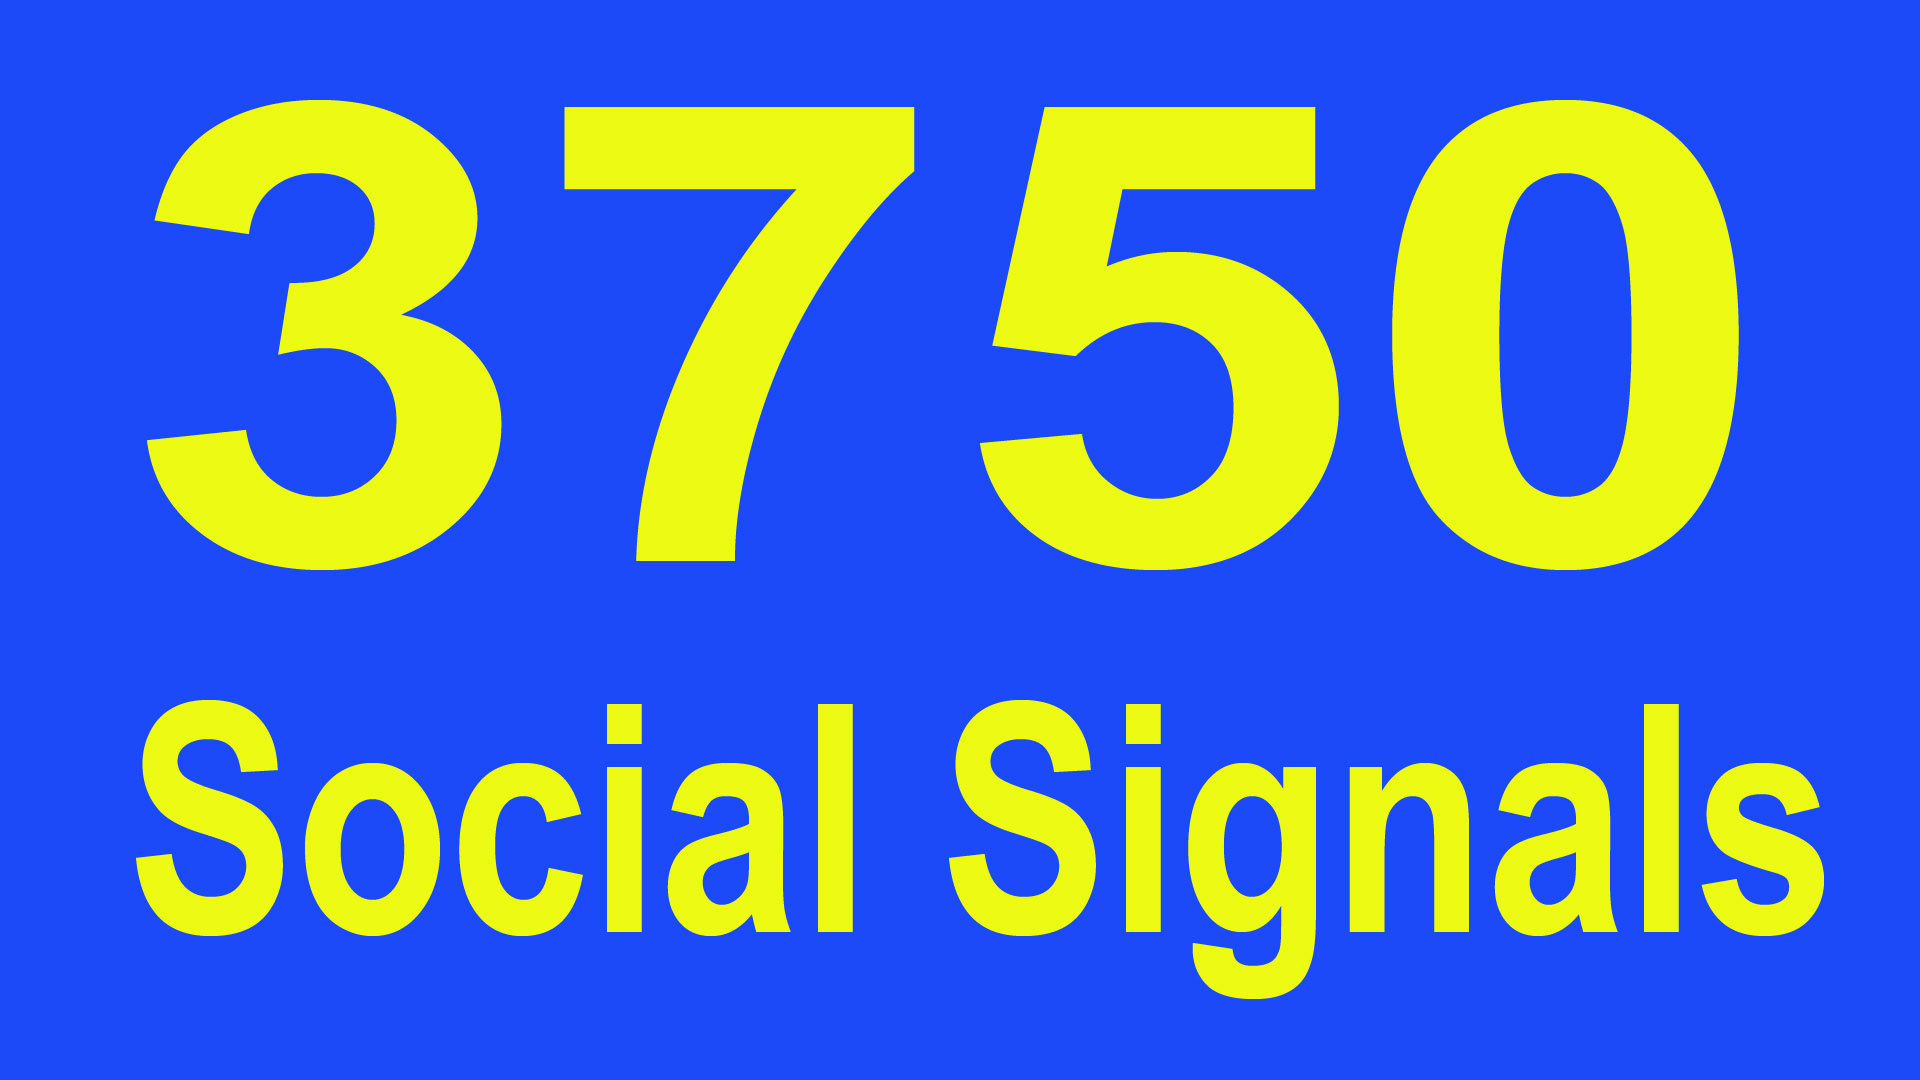 Powerfully built 3750 Social Shares Signals to heavy SEO help,  Best on seoclerks